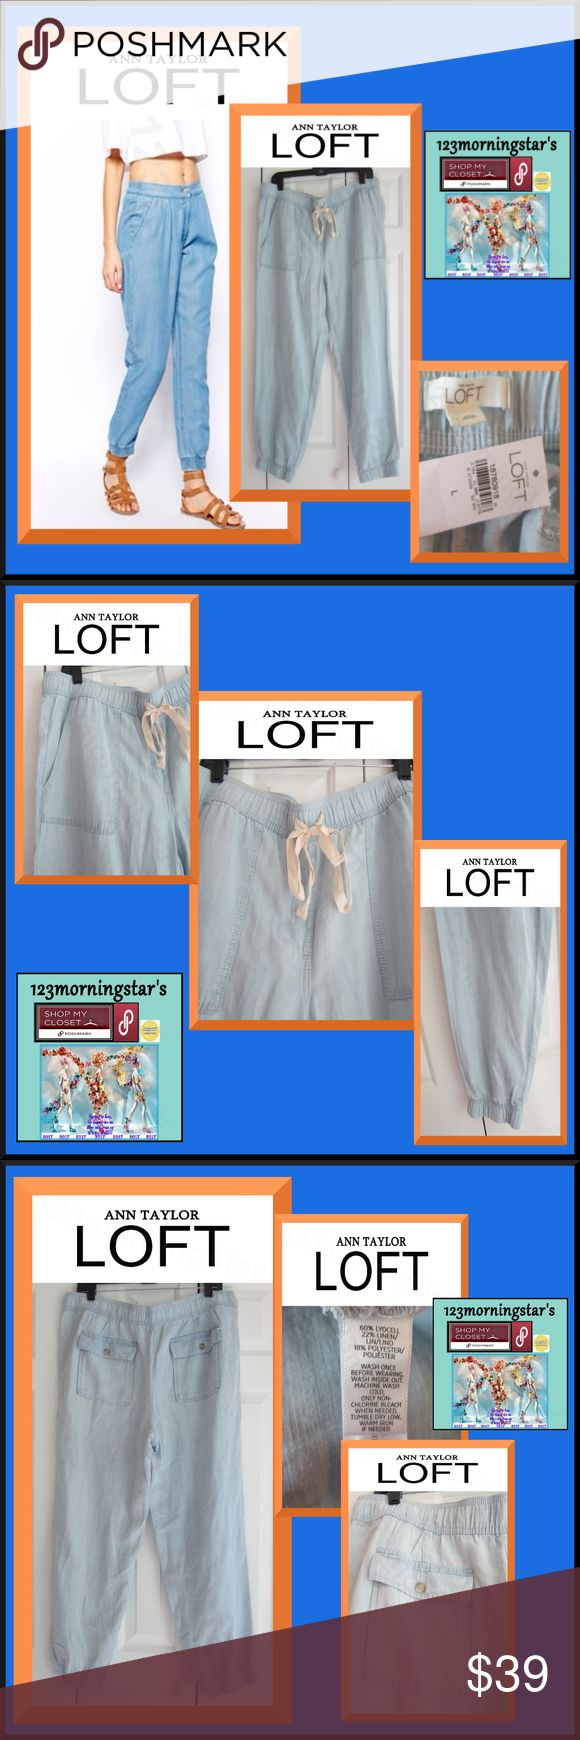 ANN TAYLOR LOFT Drawstring Elastic Ankl Beach Pant ANN TAYLOR LOFT |NEW| Chambray Jogger Drawstring Cuffed Leg Blue Pant L Light Blue Elastic waistband with drawstring Pull-on style Big slant patch pockets at hips Wide relaxed/Cuffed ankle leg Two button flap pockets in back Machine wash cold/Tumble dry low 60% Lyocell/22% Linen/18% Polyester  (Tencel/lyocell a sustainable fabric regenerated from wood cellulose. Similar to rayon/bamboo regenerated   fabrics. Environmentally friendly…